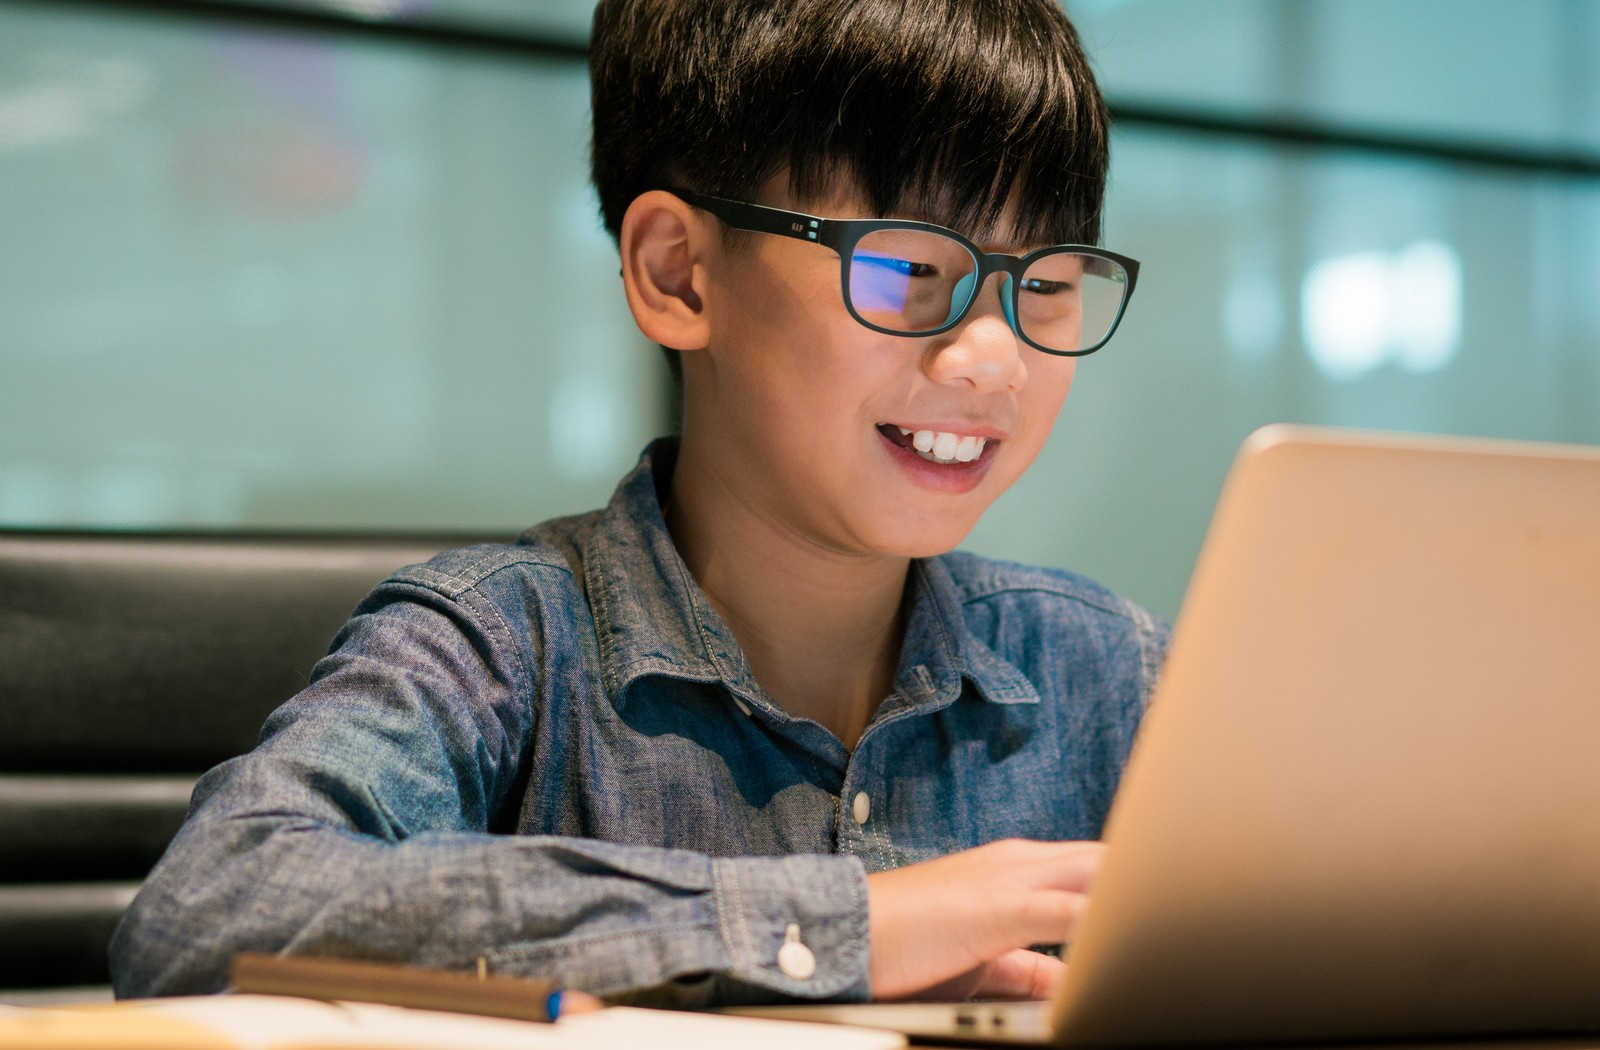 Pre-teen asian boy wearing dark rimmed glasses and denim shirt smiling while staring at his laptop computer on his desk